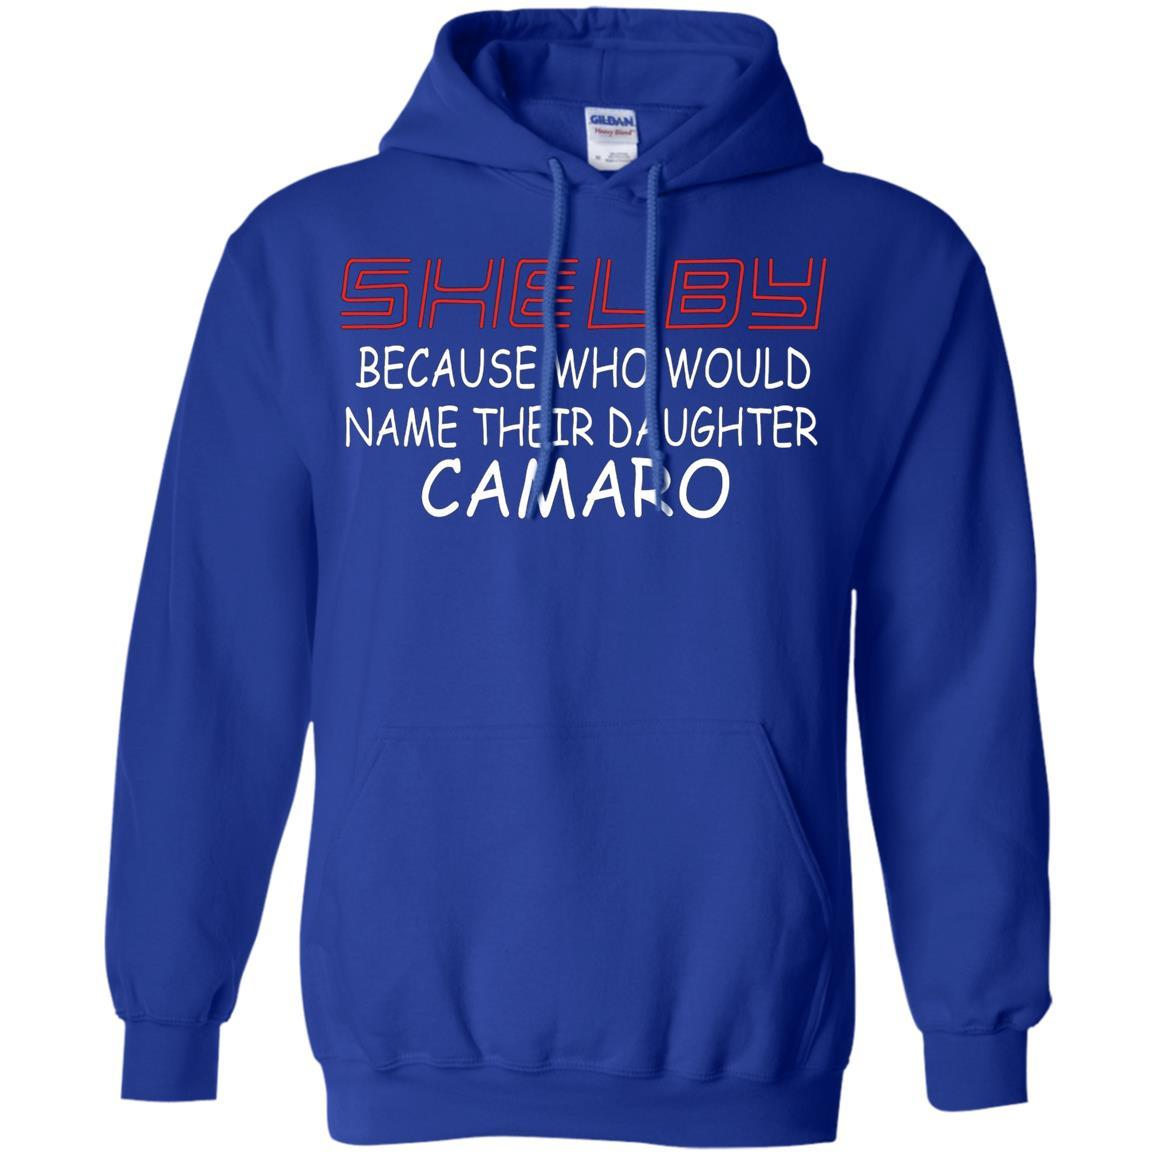 Shelby Because Who Would Name Their Daughter Camaro - Pullover Hoodie Royal / 5XL